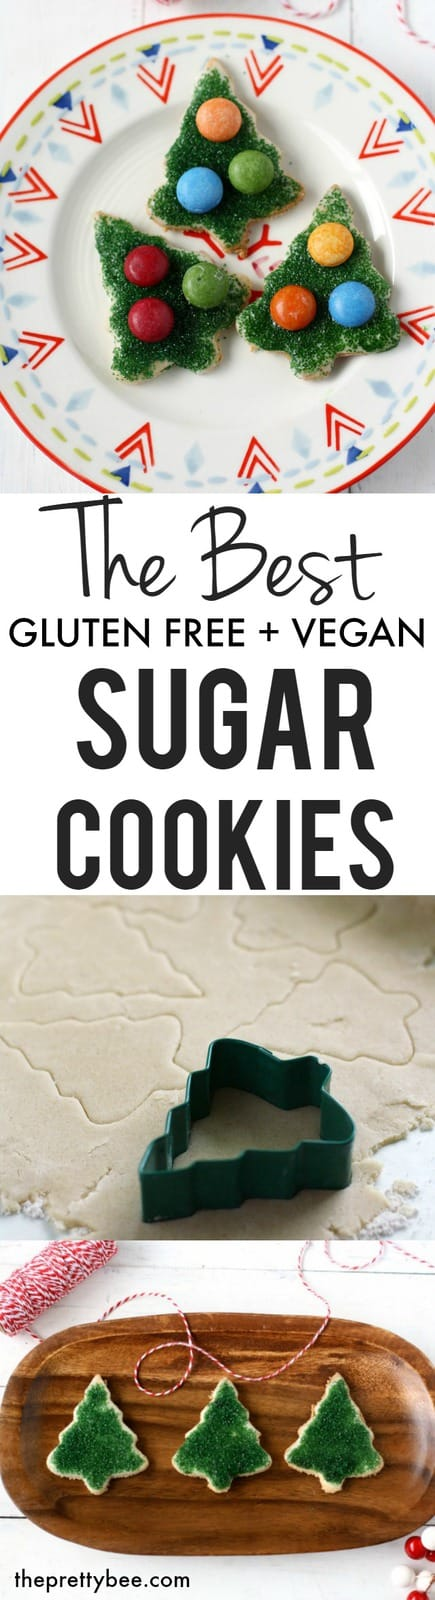 Easy and delicious gluten free vegan sugar cookies are perfect for your holiday baking!